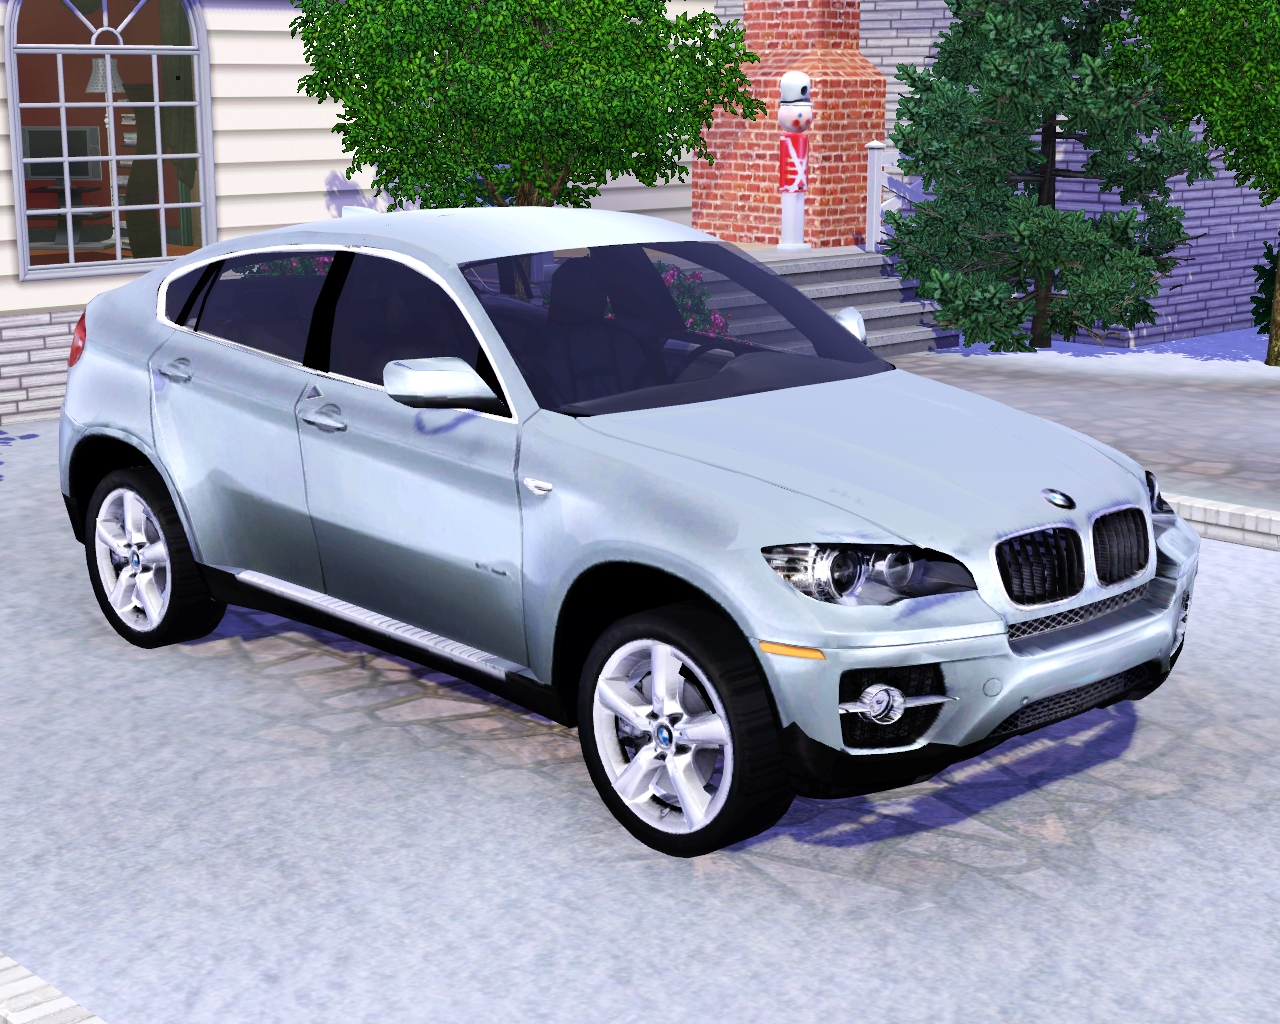 2009 BMW X6 by Fresh-Prince